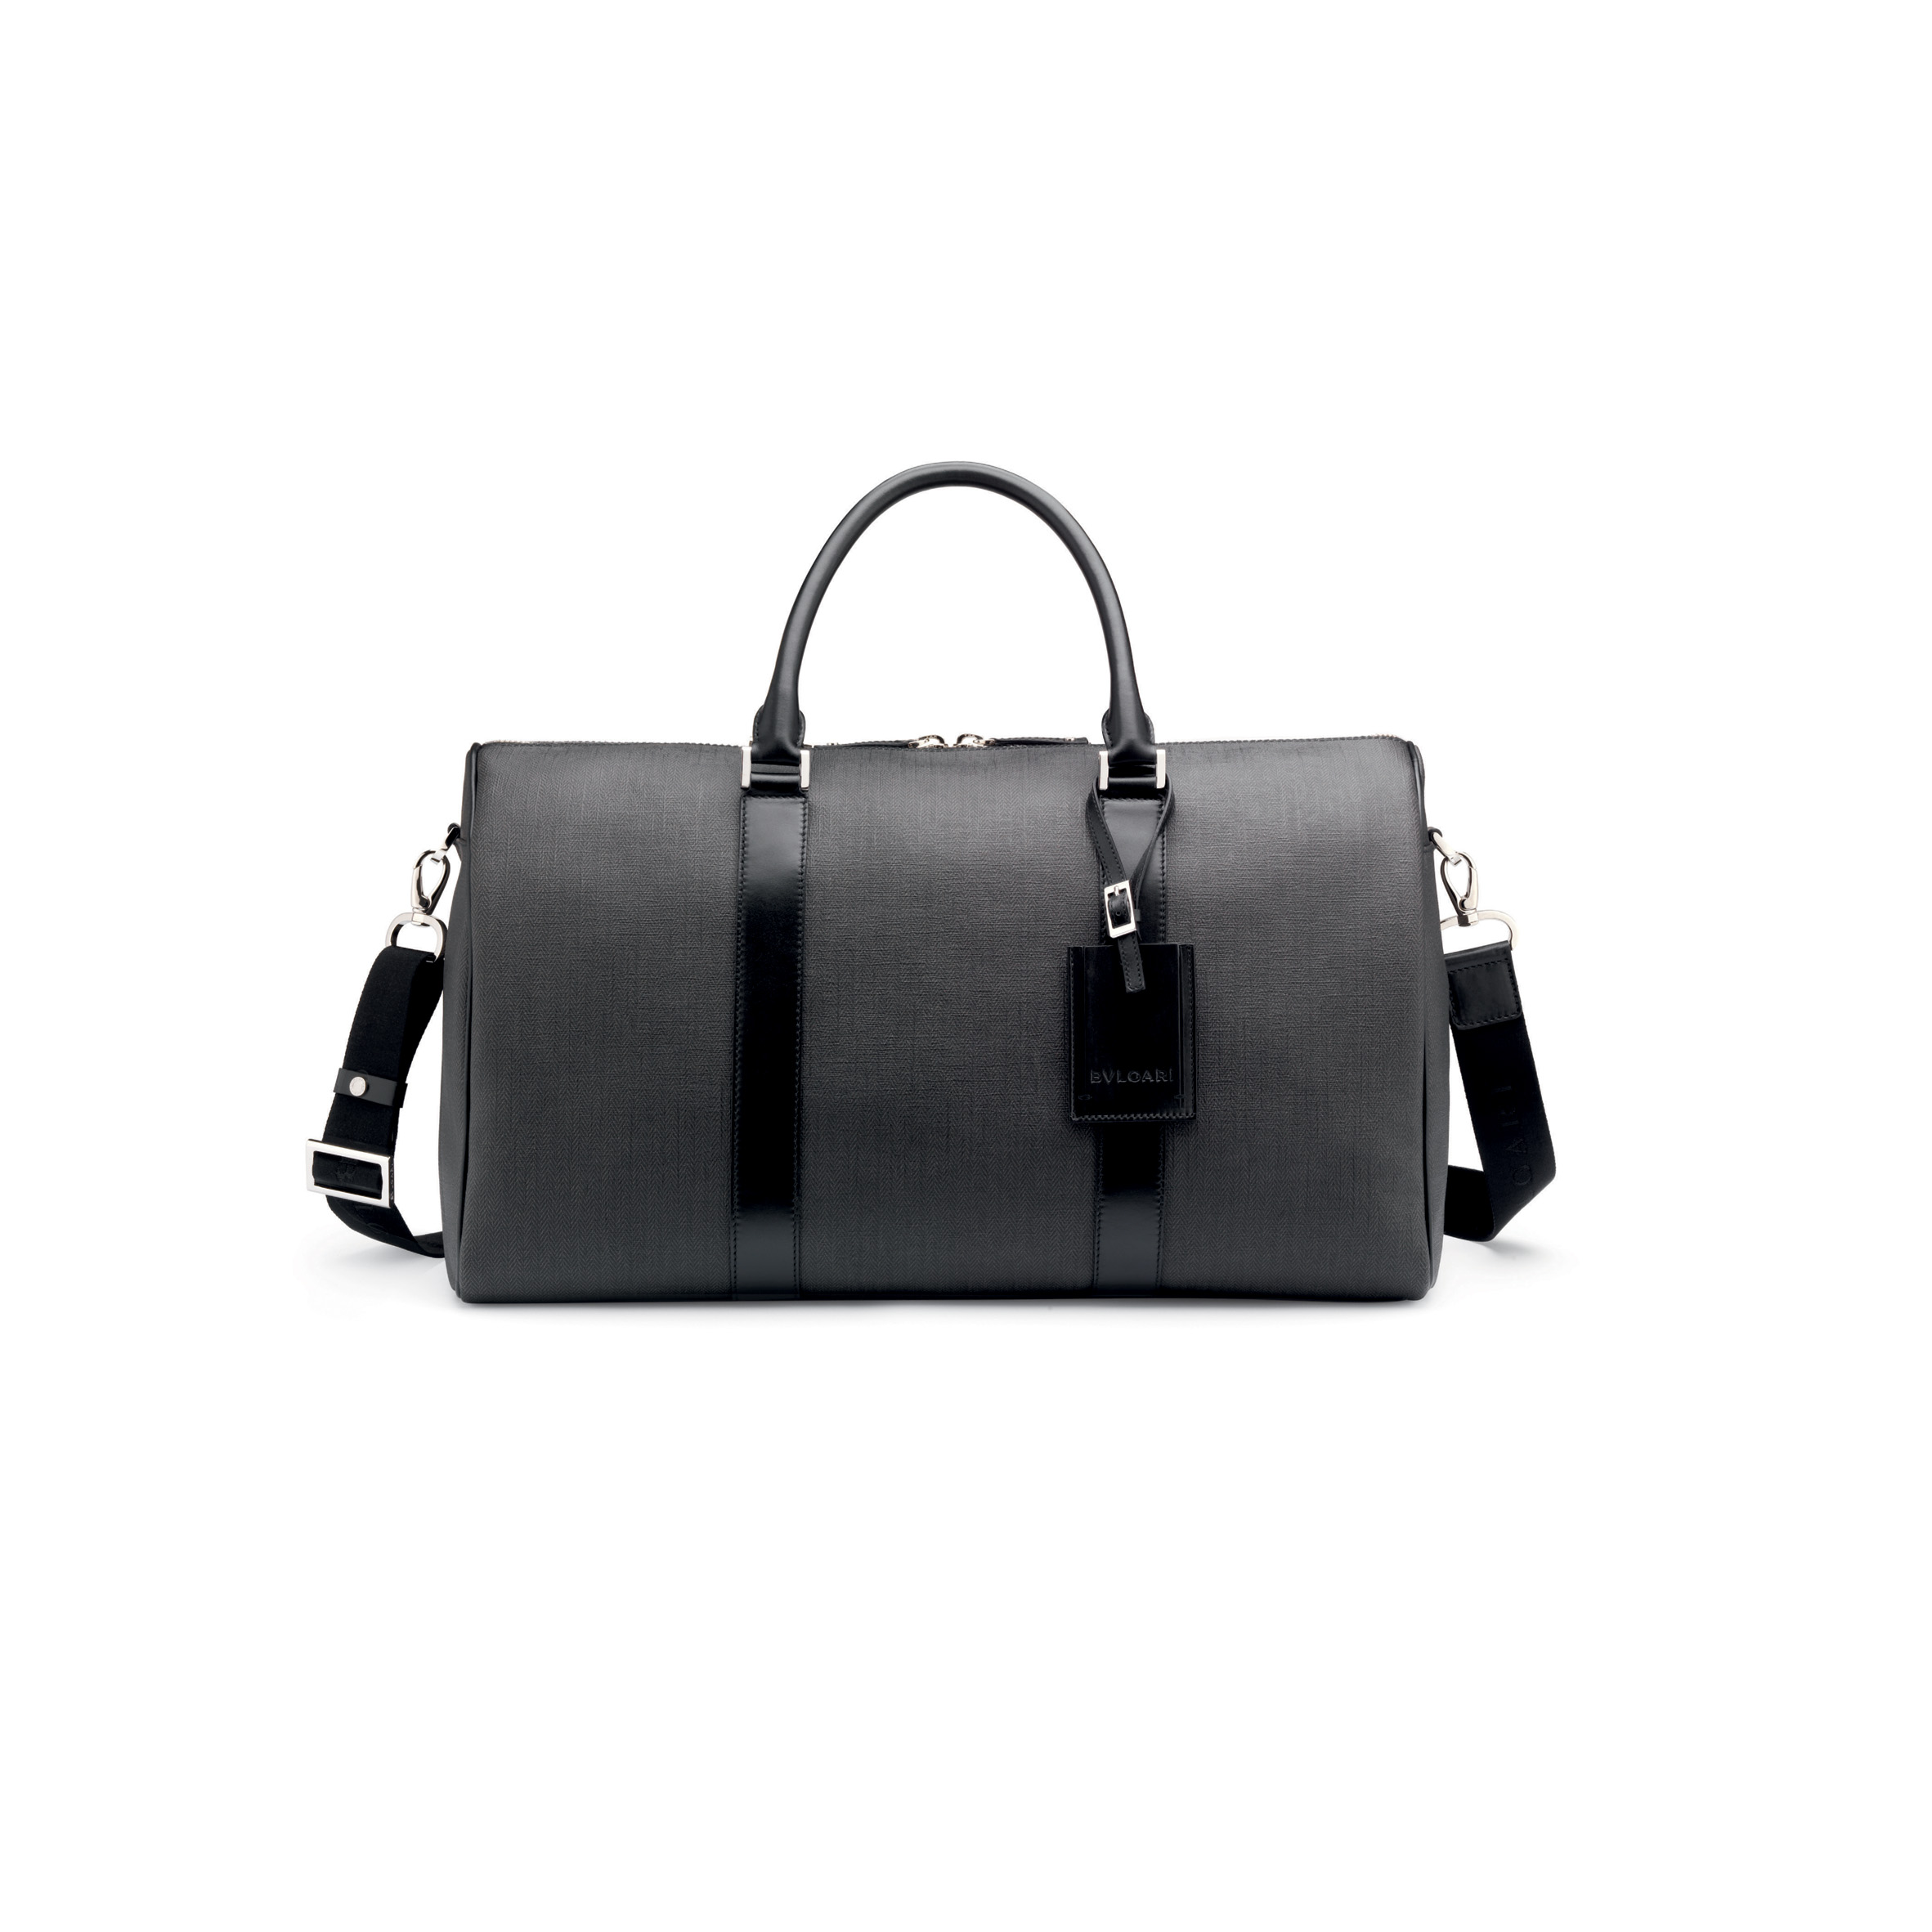 Stylish Bag for Men: The Formal & Casual Bulgari Men's Travel Bag ...